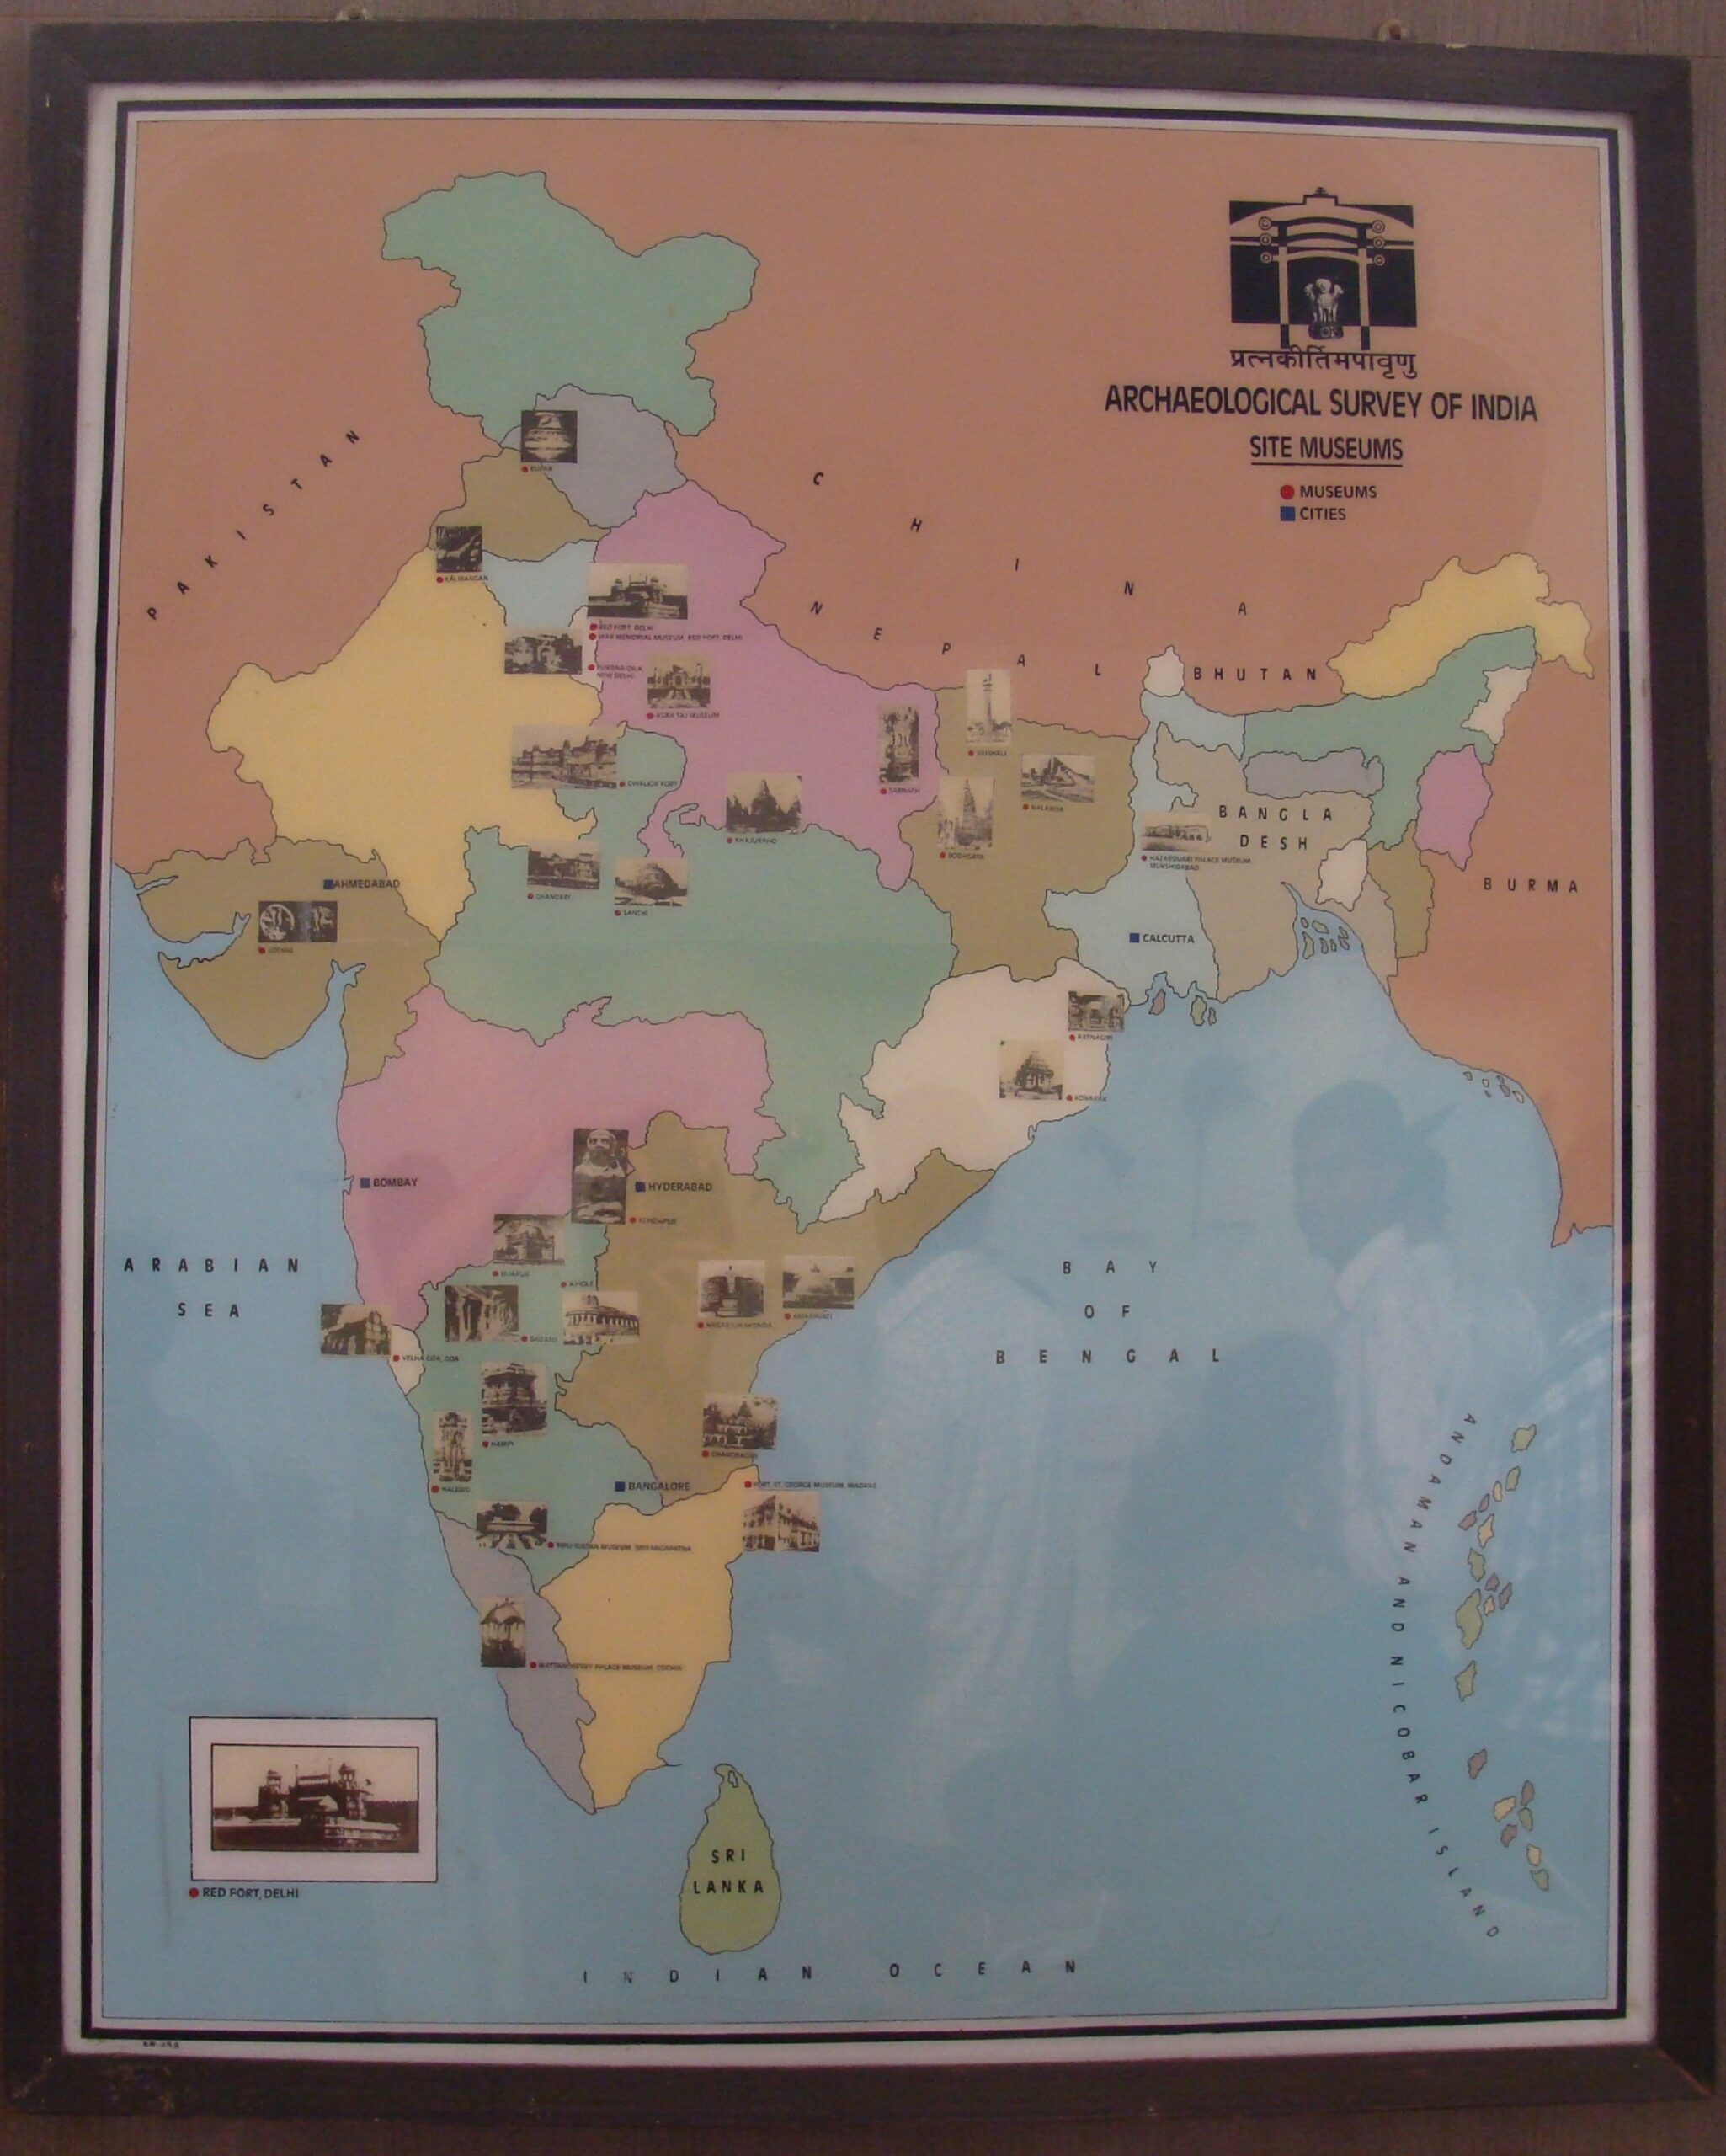 ARCHAEOLOGICAL SURVEY OF INDIA - SITE MUSEUMS